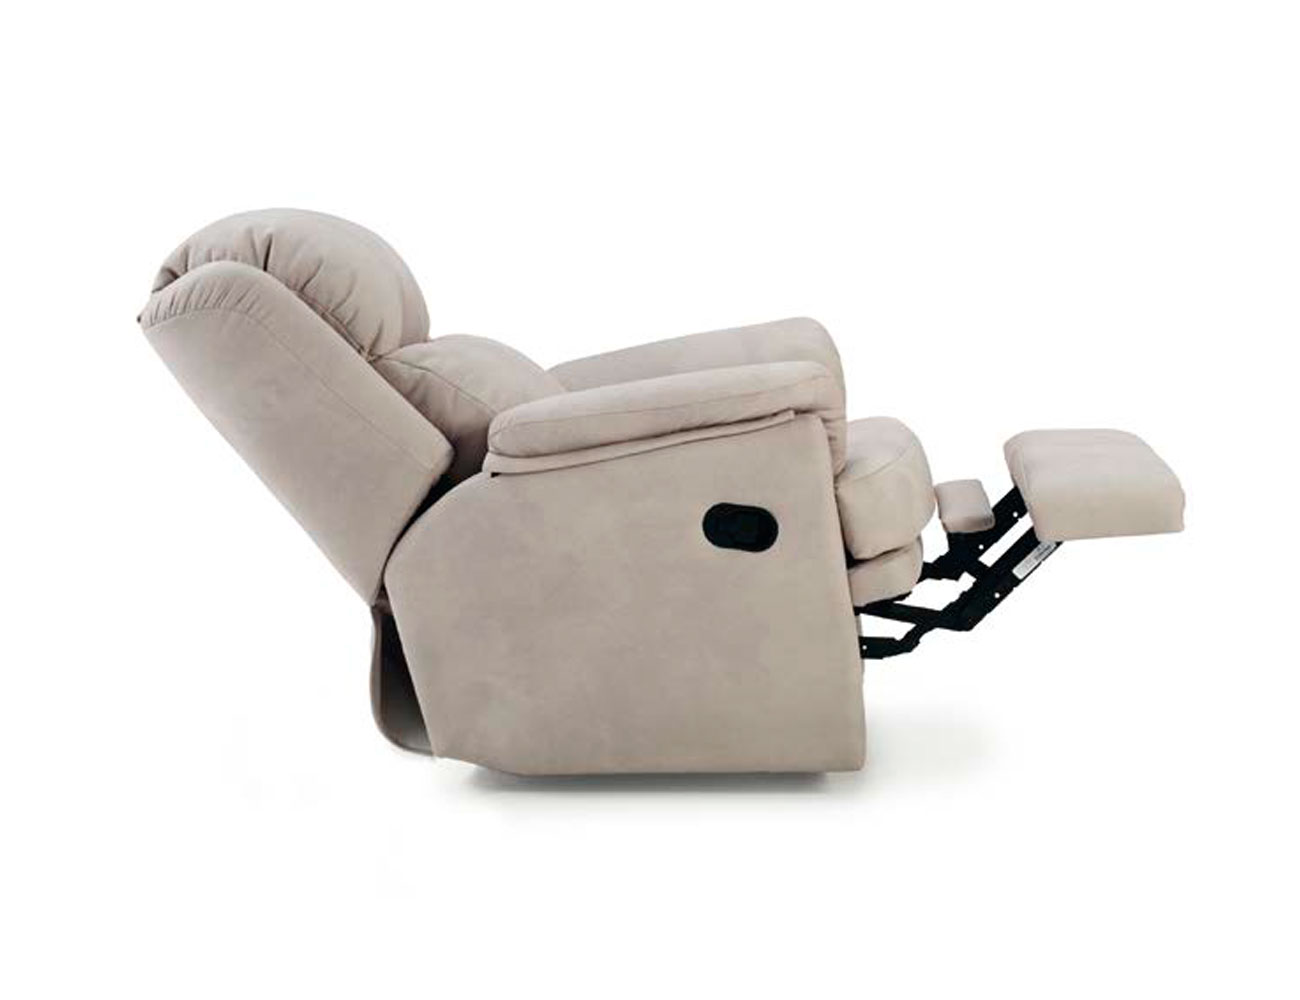 Sillon relax manual palanca esther 122